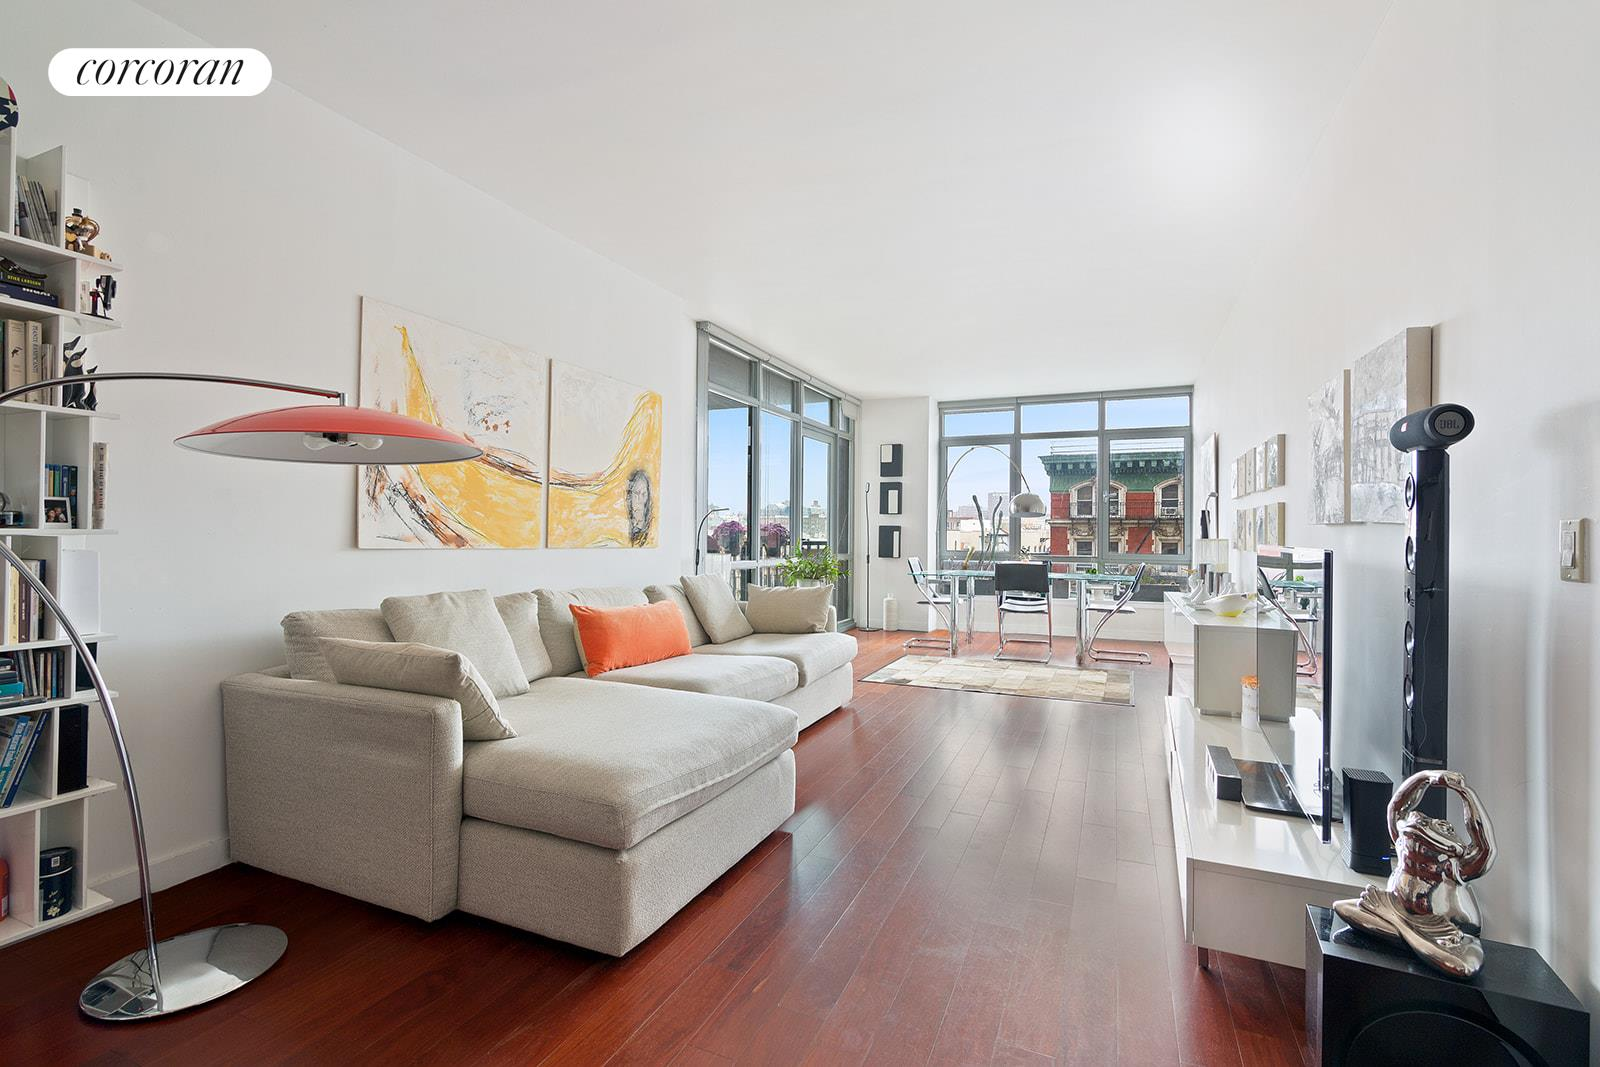 """Incredible walls of glass welcome you to this oversized two bedroom, two bathroom residence in one of Harlem's most desirable, white glove condominiums. Apartment 7F offers beautiful South and East views from the massive living space and private terrace. Enjoy fabulous natural light from the open kitchen with stainless steel appliances and breakfast bar.The spacious master bedroom with unobstructed views from the two large windows feature three closets, one being a walk-in and an en suite bath with separate shower and soaking tub. The secondary bedroom is sizable and enjoys beautiful light and views.Pristine cherry wide-plank wood floors, central air conditioning, in unit washer and dryer, a dreamy amount of closets and gallery-quality wall space to showcase art complete this perfectly proportioned home.""""5th on the Park"""" is a white glove building which offers a pool, gym, two common terraces and a playroom. There is a garage in the building as well. This unique high-rise building in South Harlem is located right on Marcus Garvey Park and Central Park is only a few blocks away. The green line's and red line's stations are close by which allows quick access to Midtown and Downtown Manhattan and beyond, and there are a myriad of great restaurants, shops and services close by. Pets allowed. Tax abatement until 2034."""